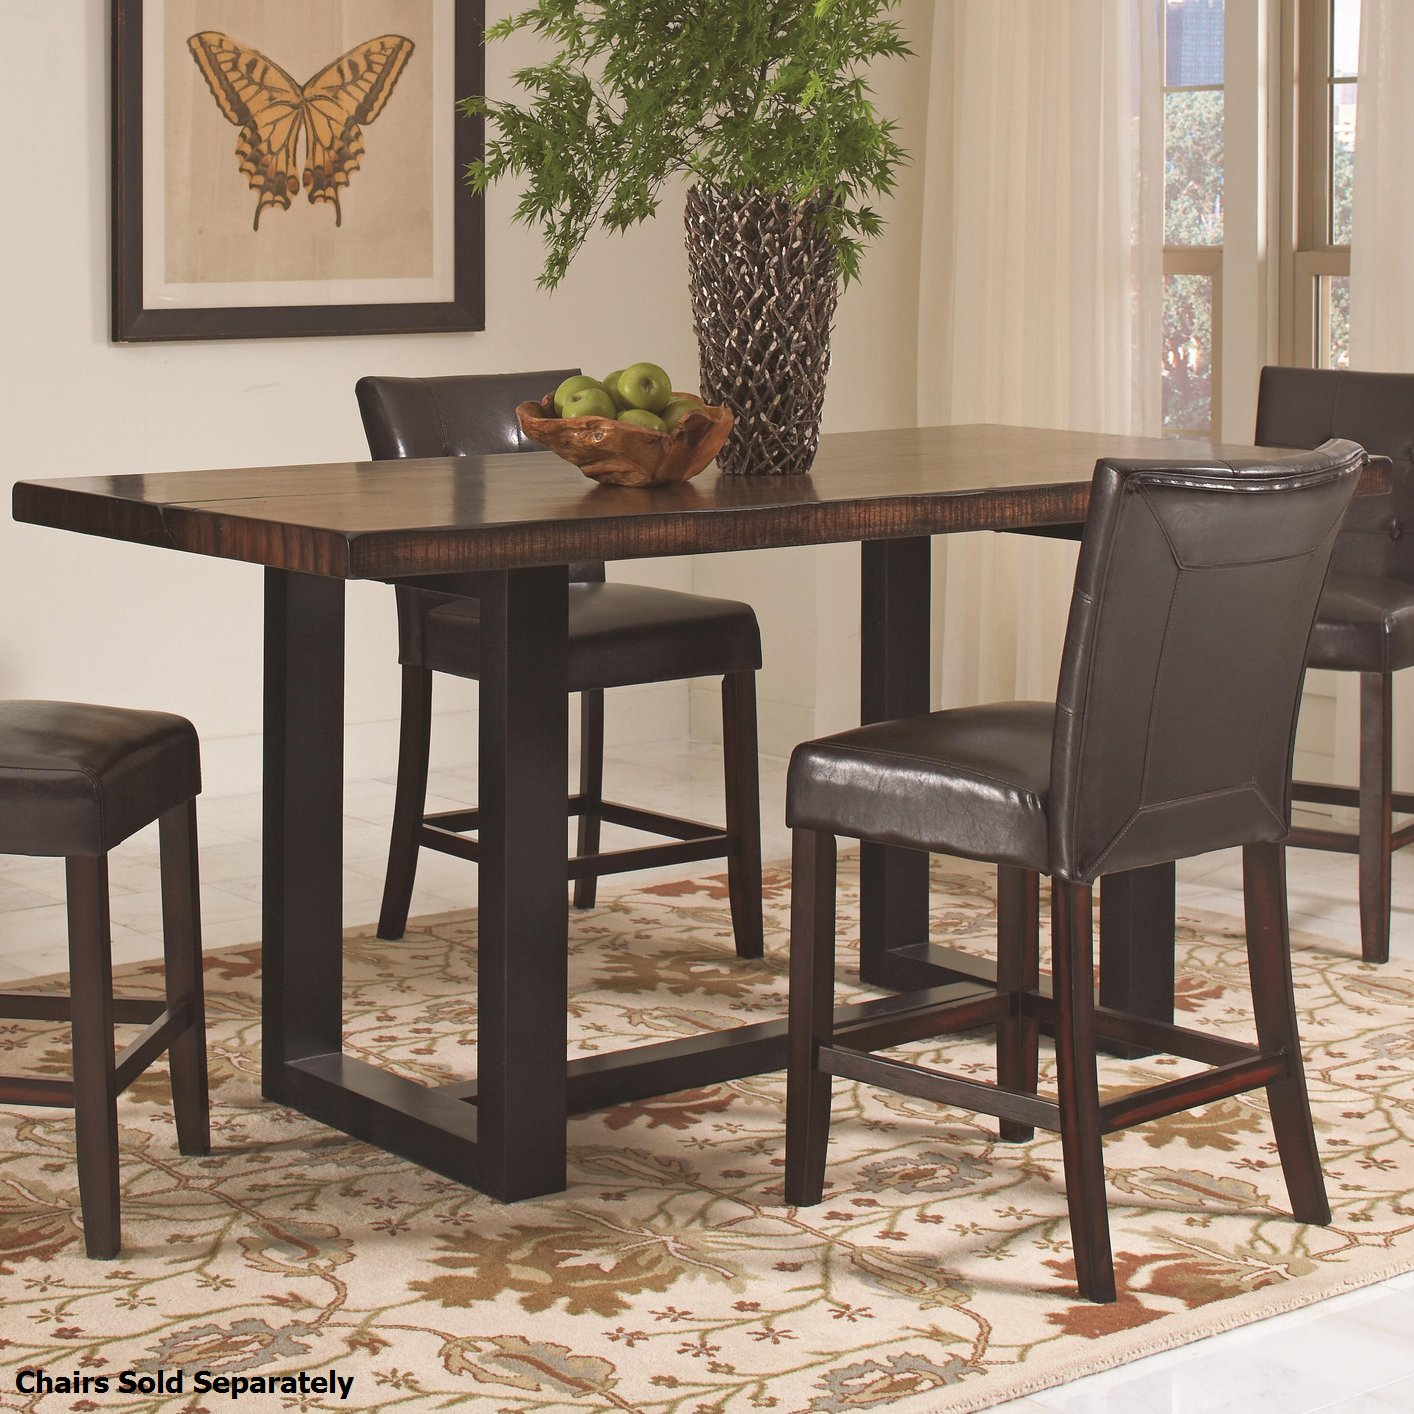 Coaster 121648 Black Wood Dining Table Steal A Sofa Furniture Outlet Los An